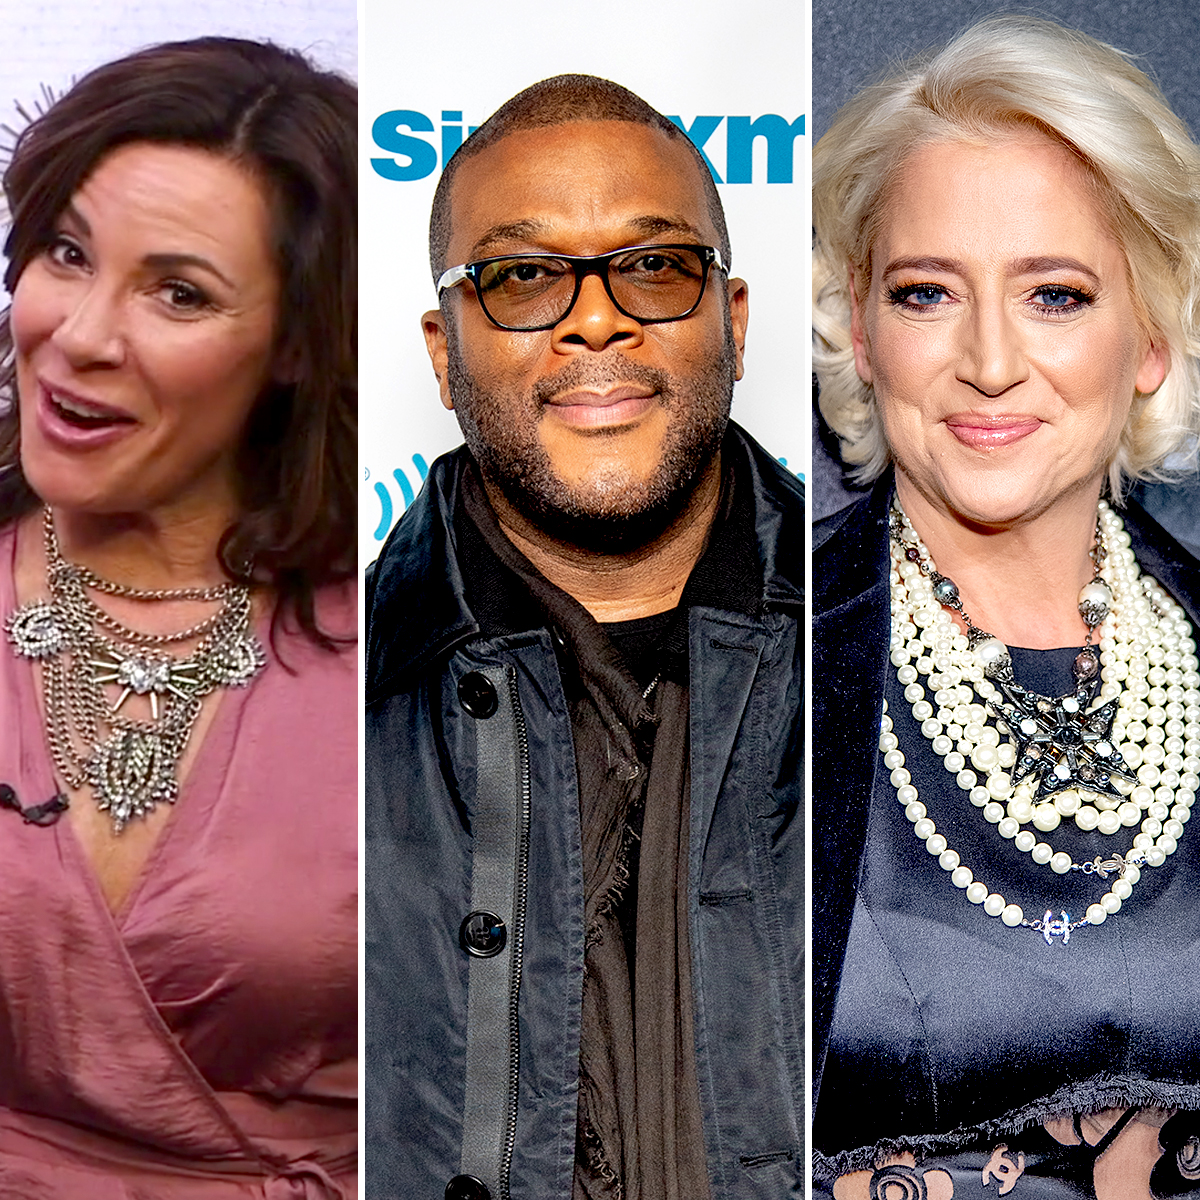 Luann-de-Lesseps-Read-Tyler-Perry-Quotes-After-Dorinda-Medley-Text-Drama